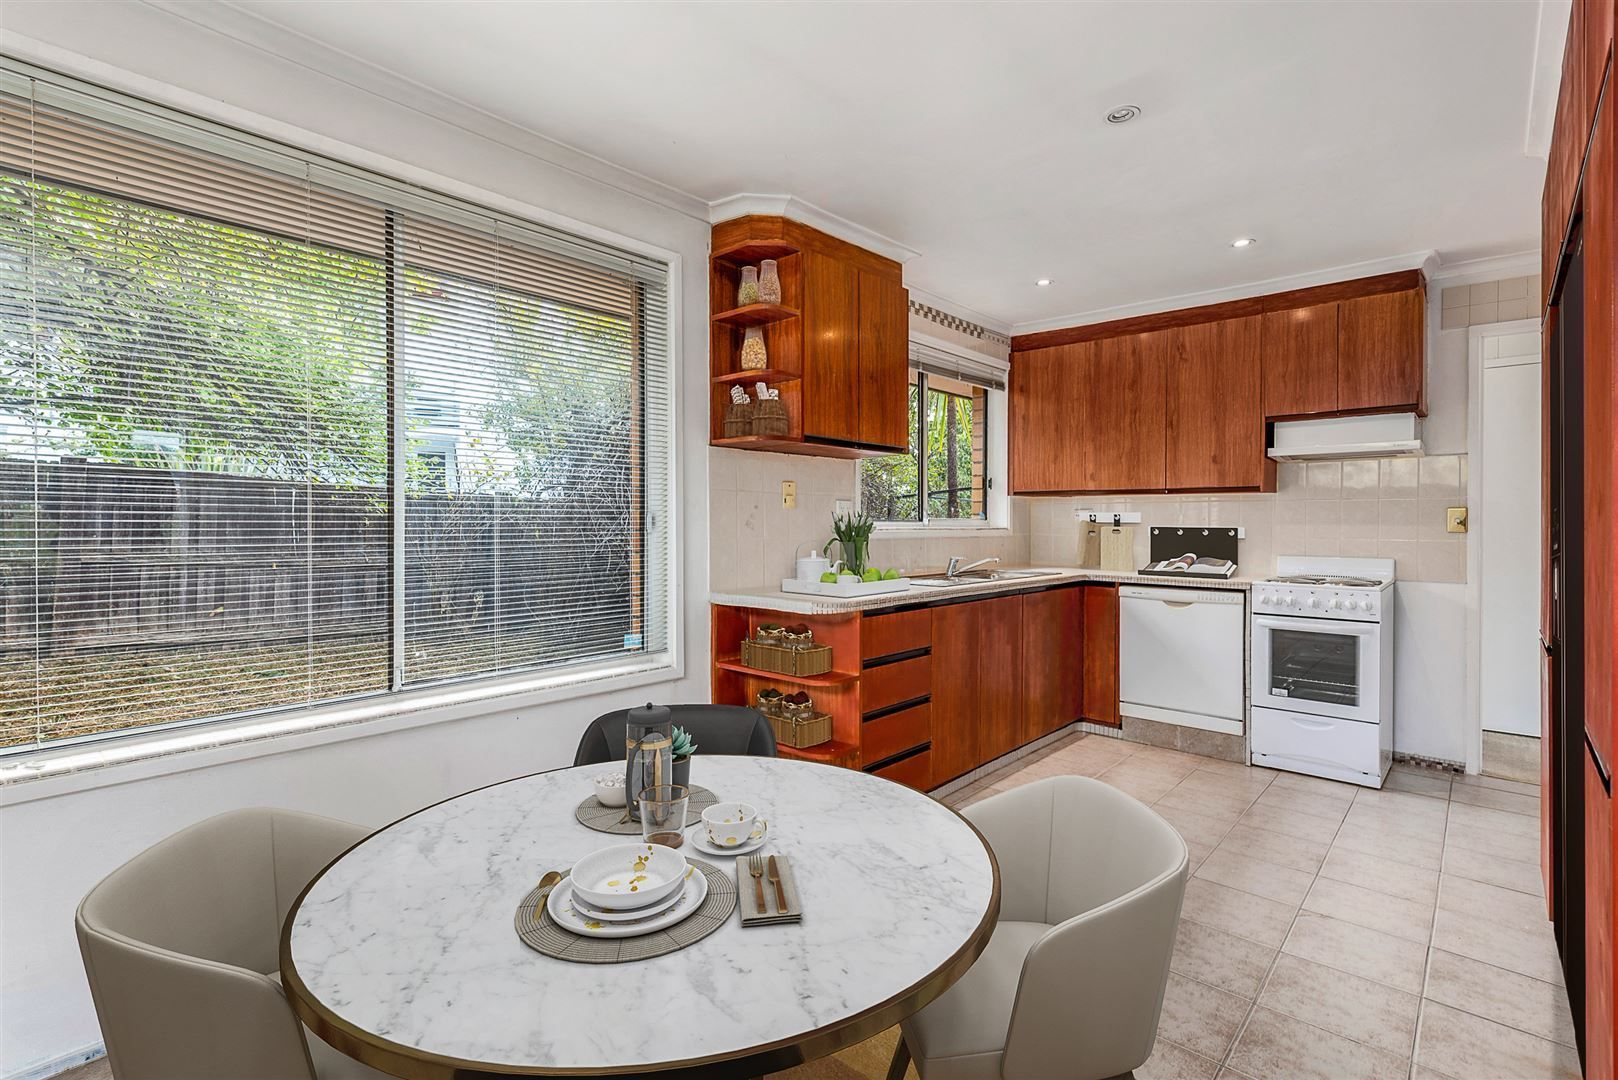 2/18 Marys Hope Road, Rosetta TAS 7010, Image 2